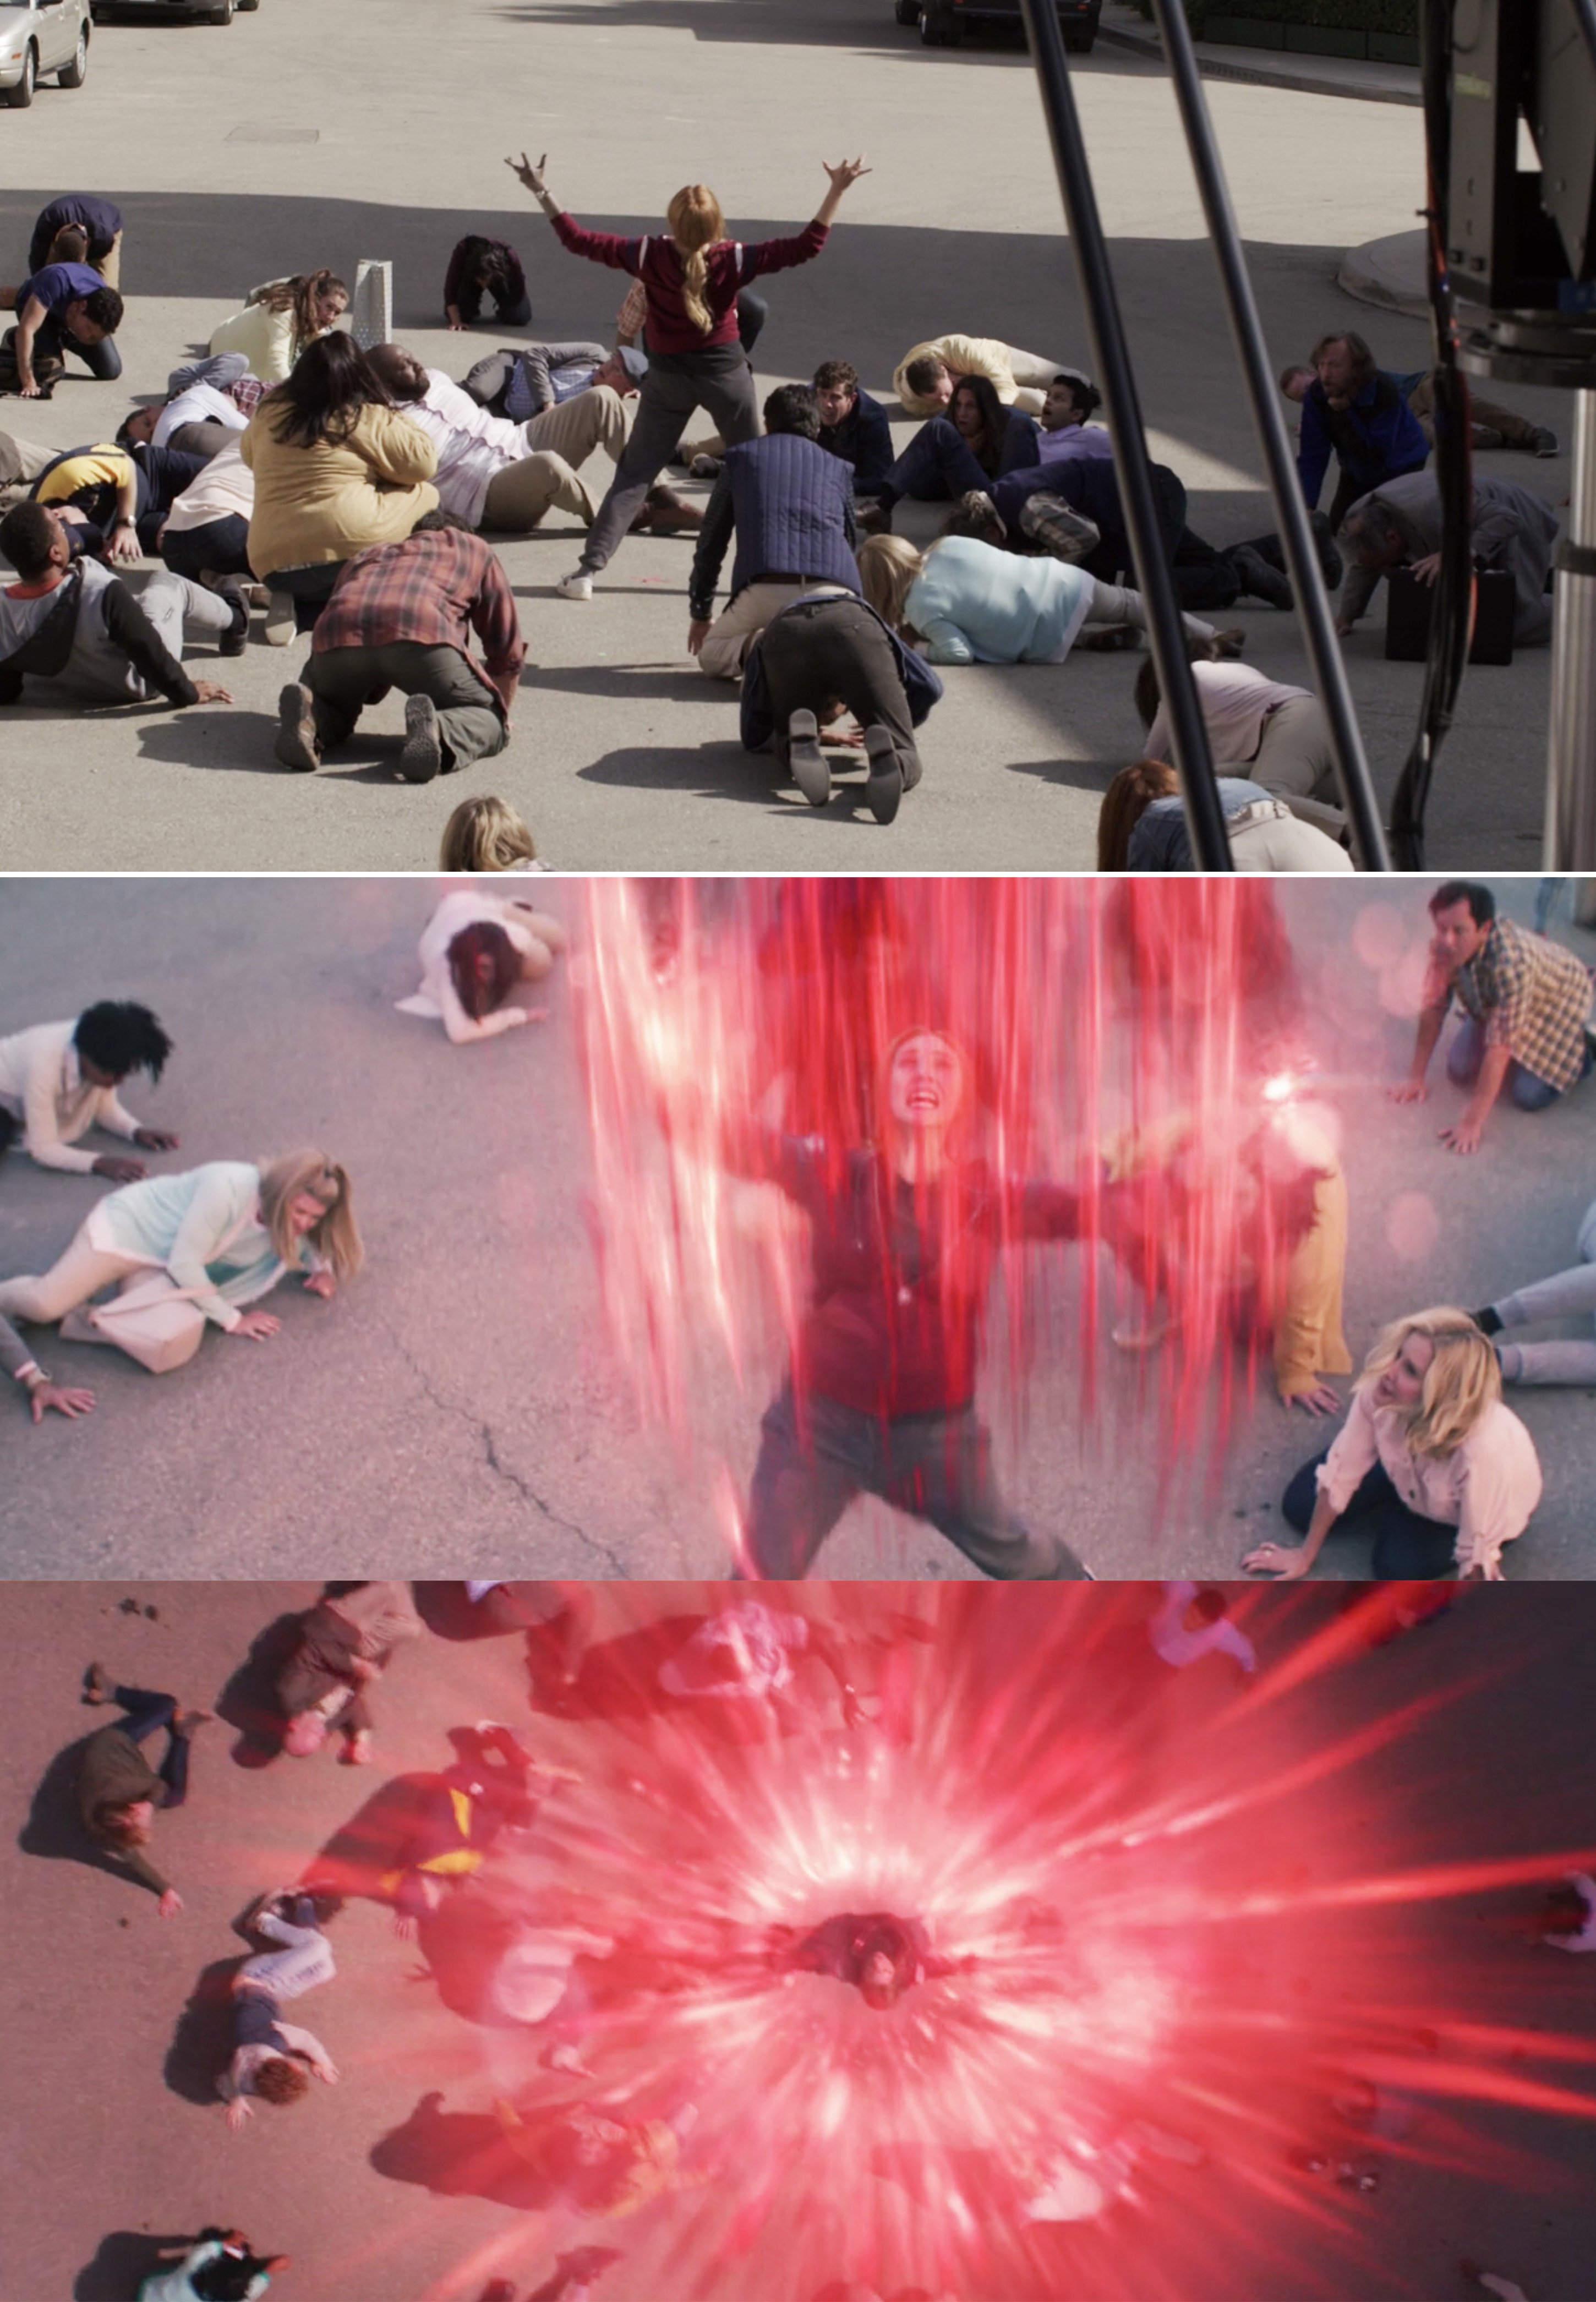 Wanda opening the Hex before and after visual effects